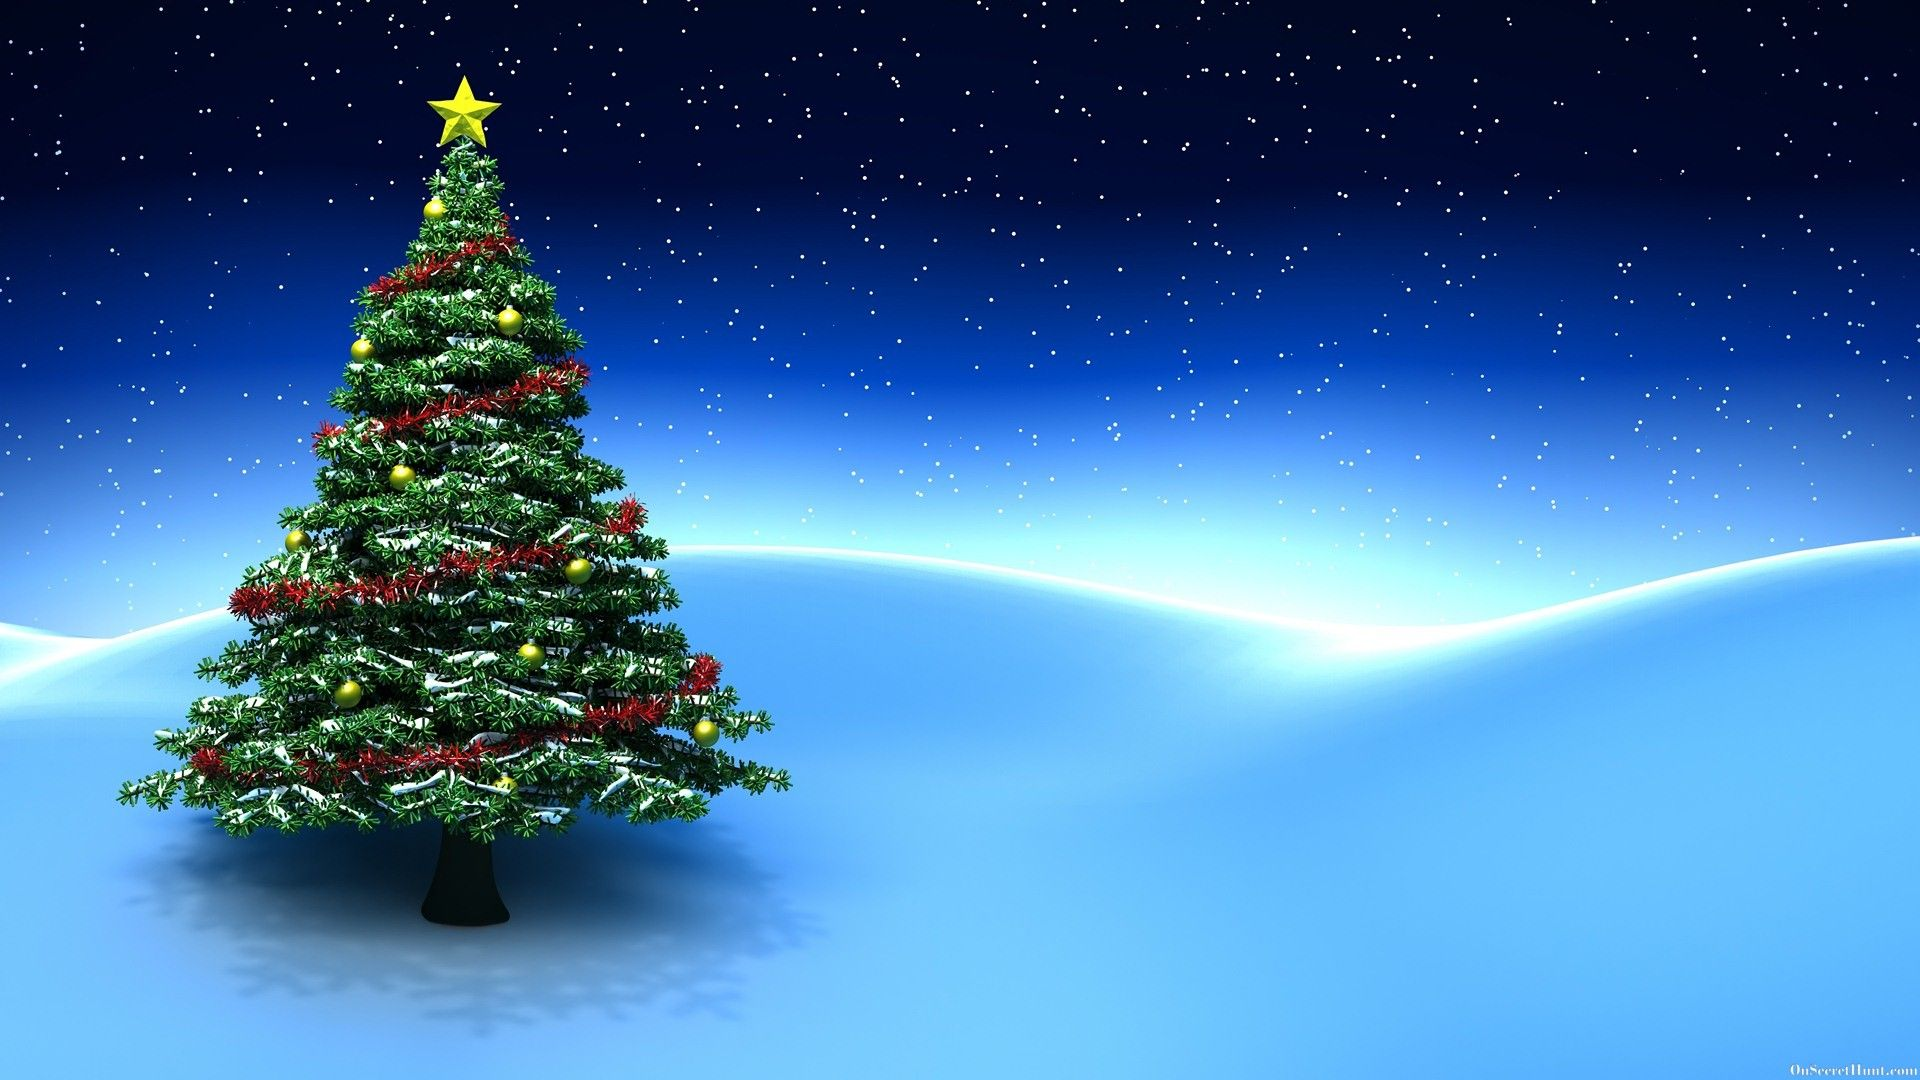 1920x1080 - Christmas Trees Backgrounds 7